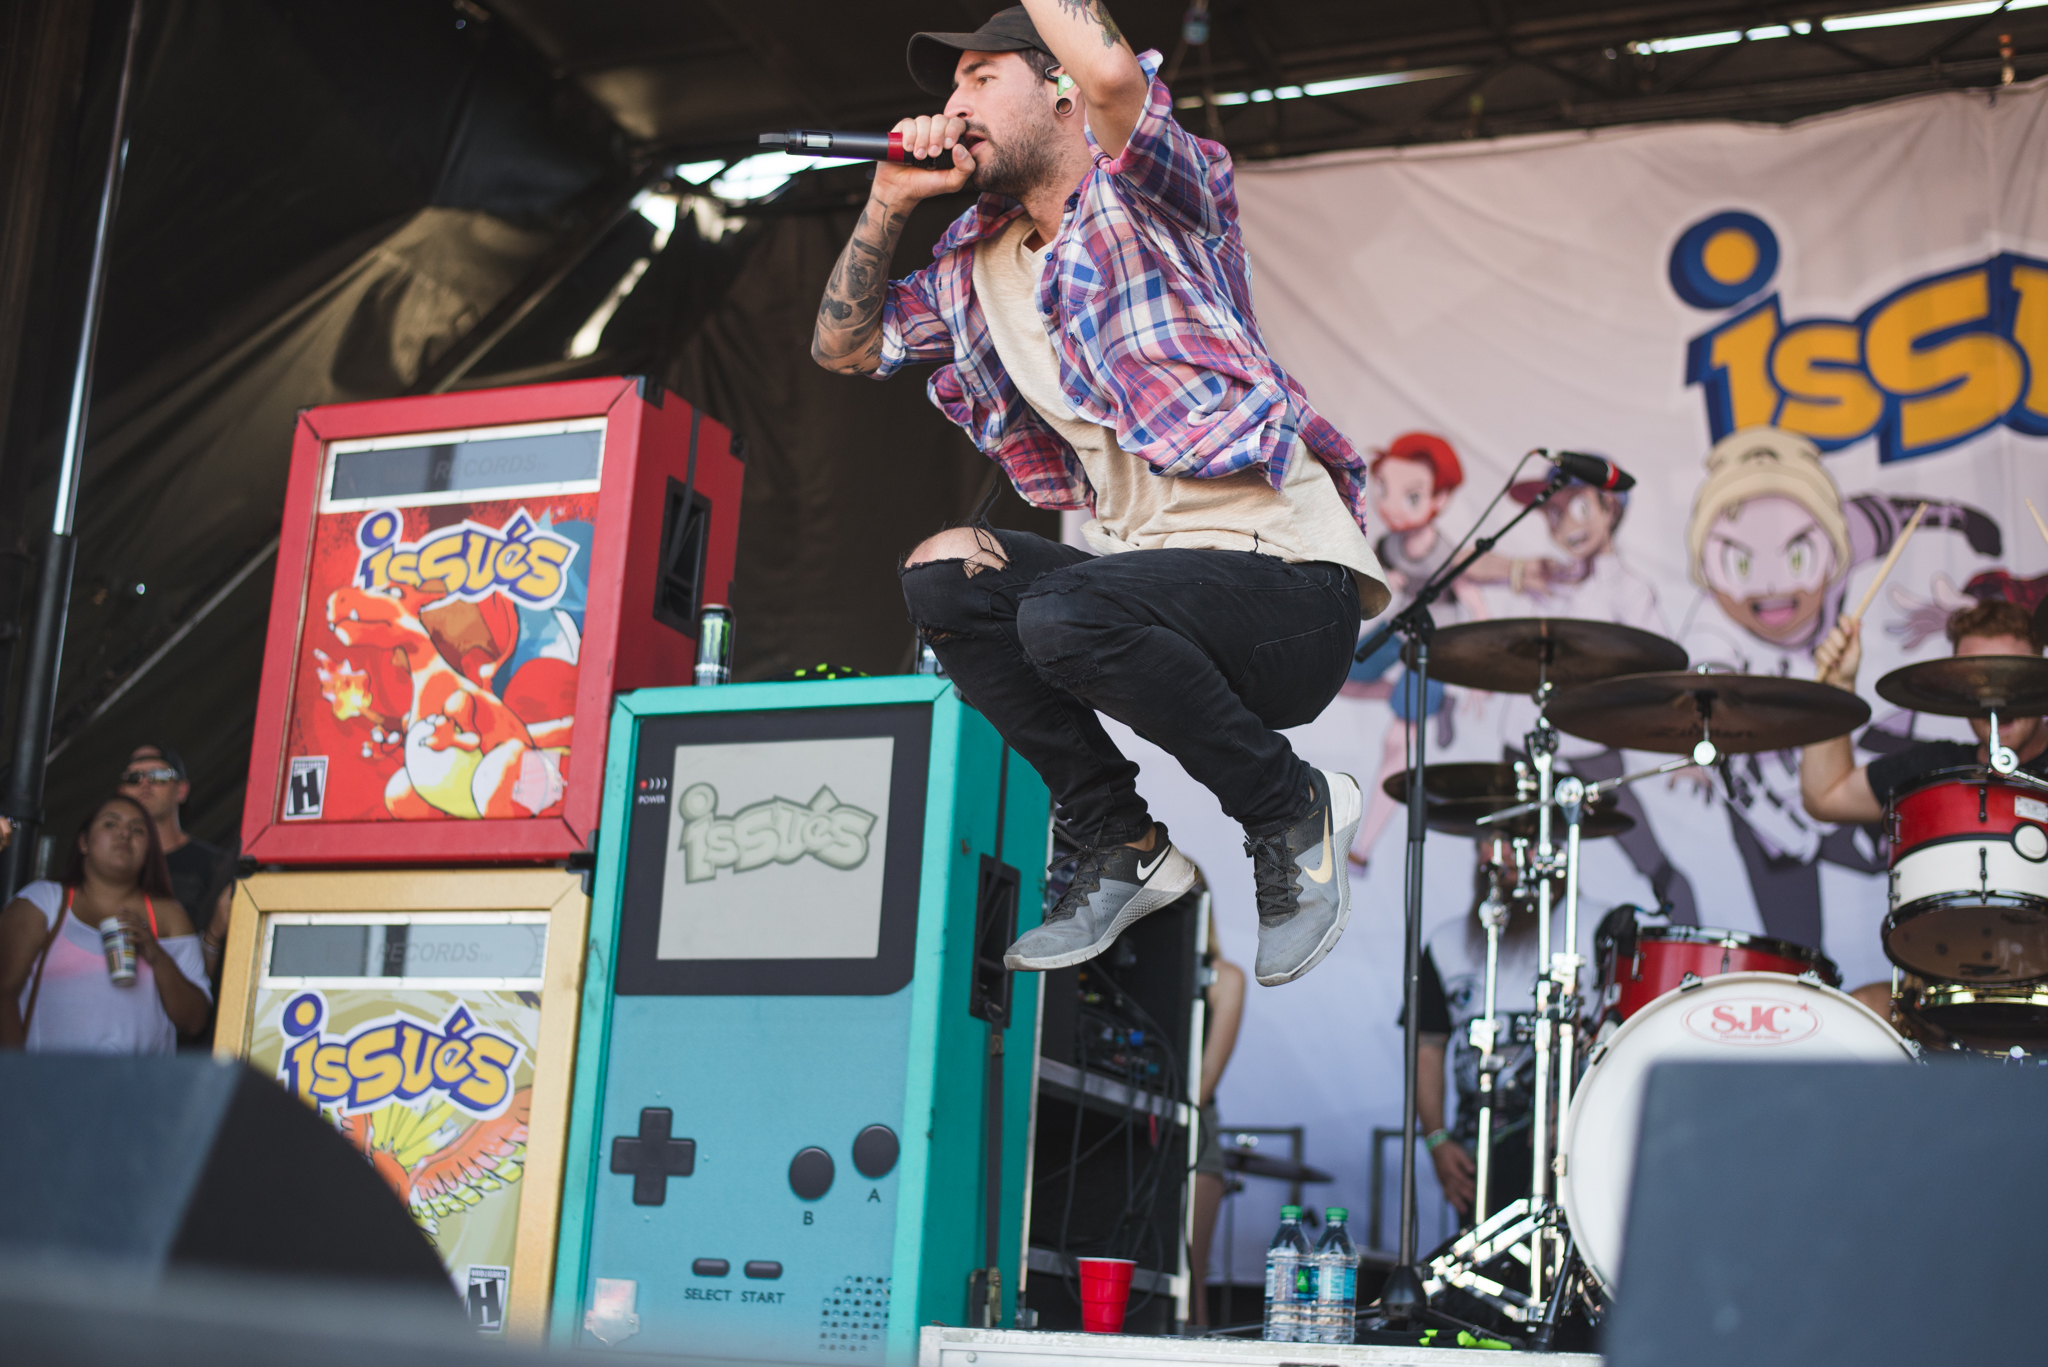 Issues - Photo by Lindsey Blane